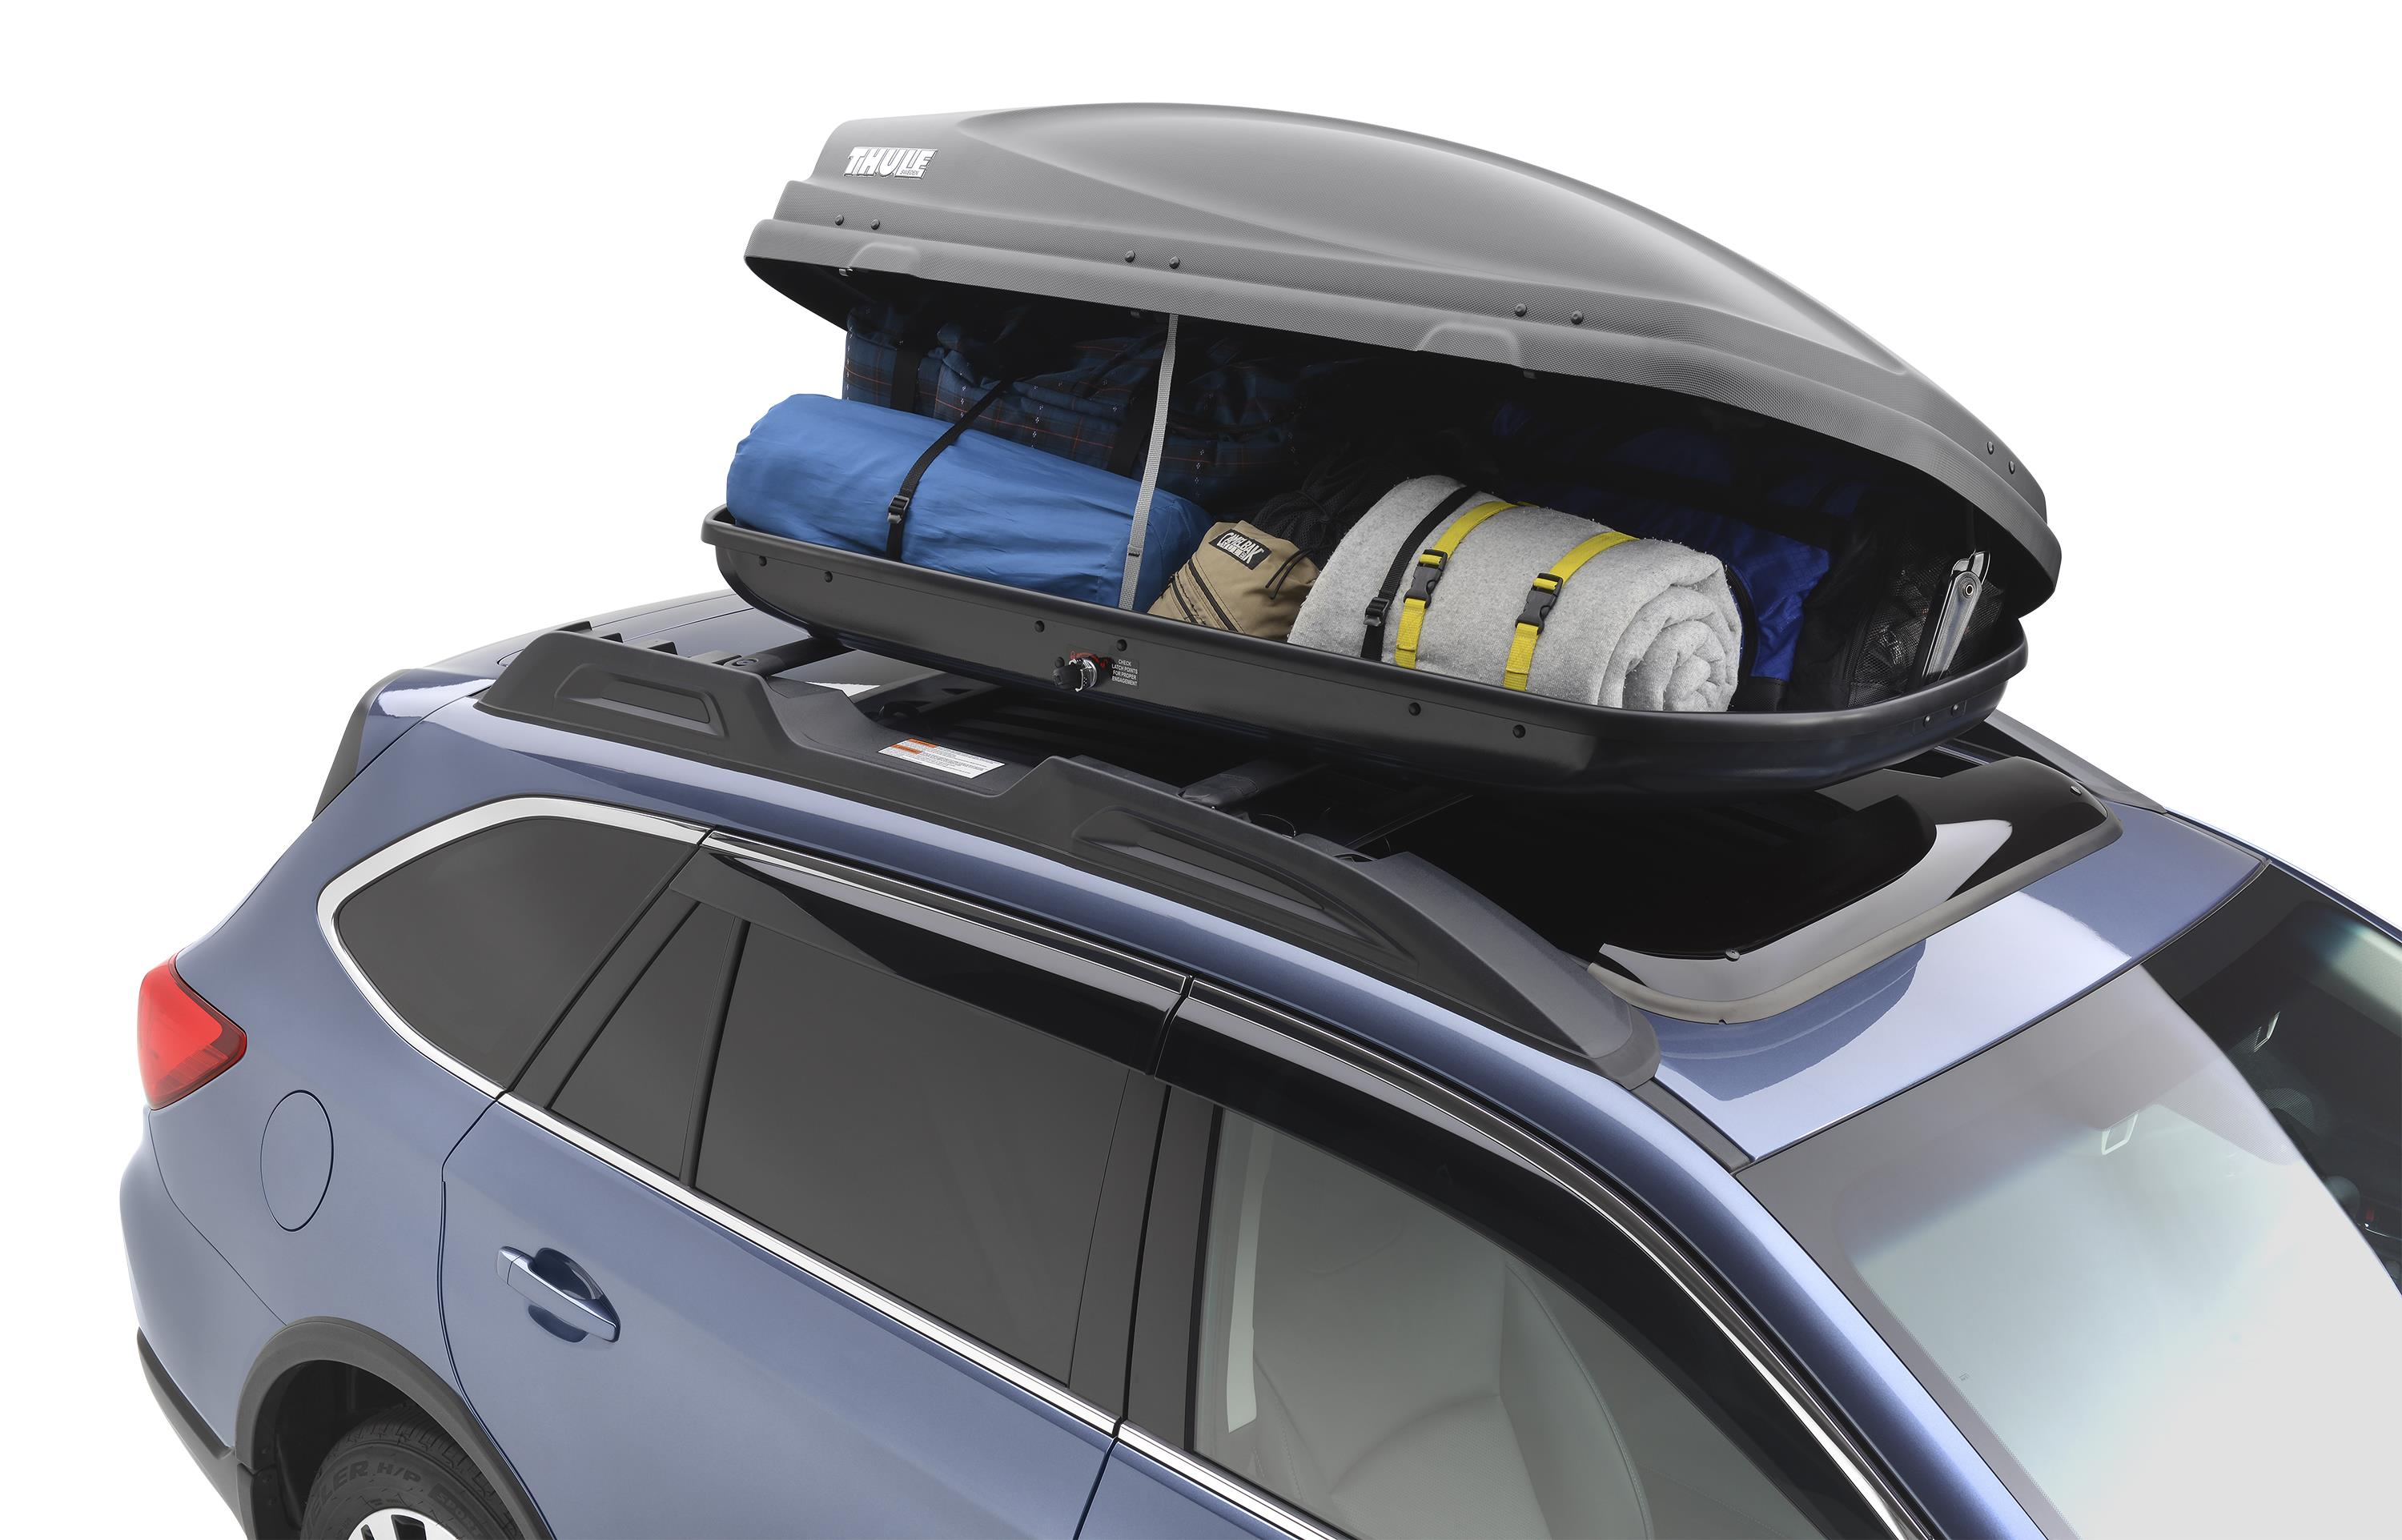 2017 Subaru Forester Thule Roof Cargo Carrier Provides